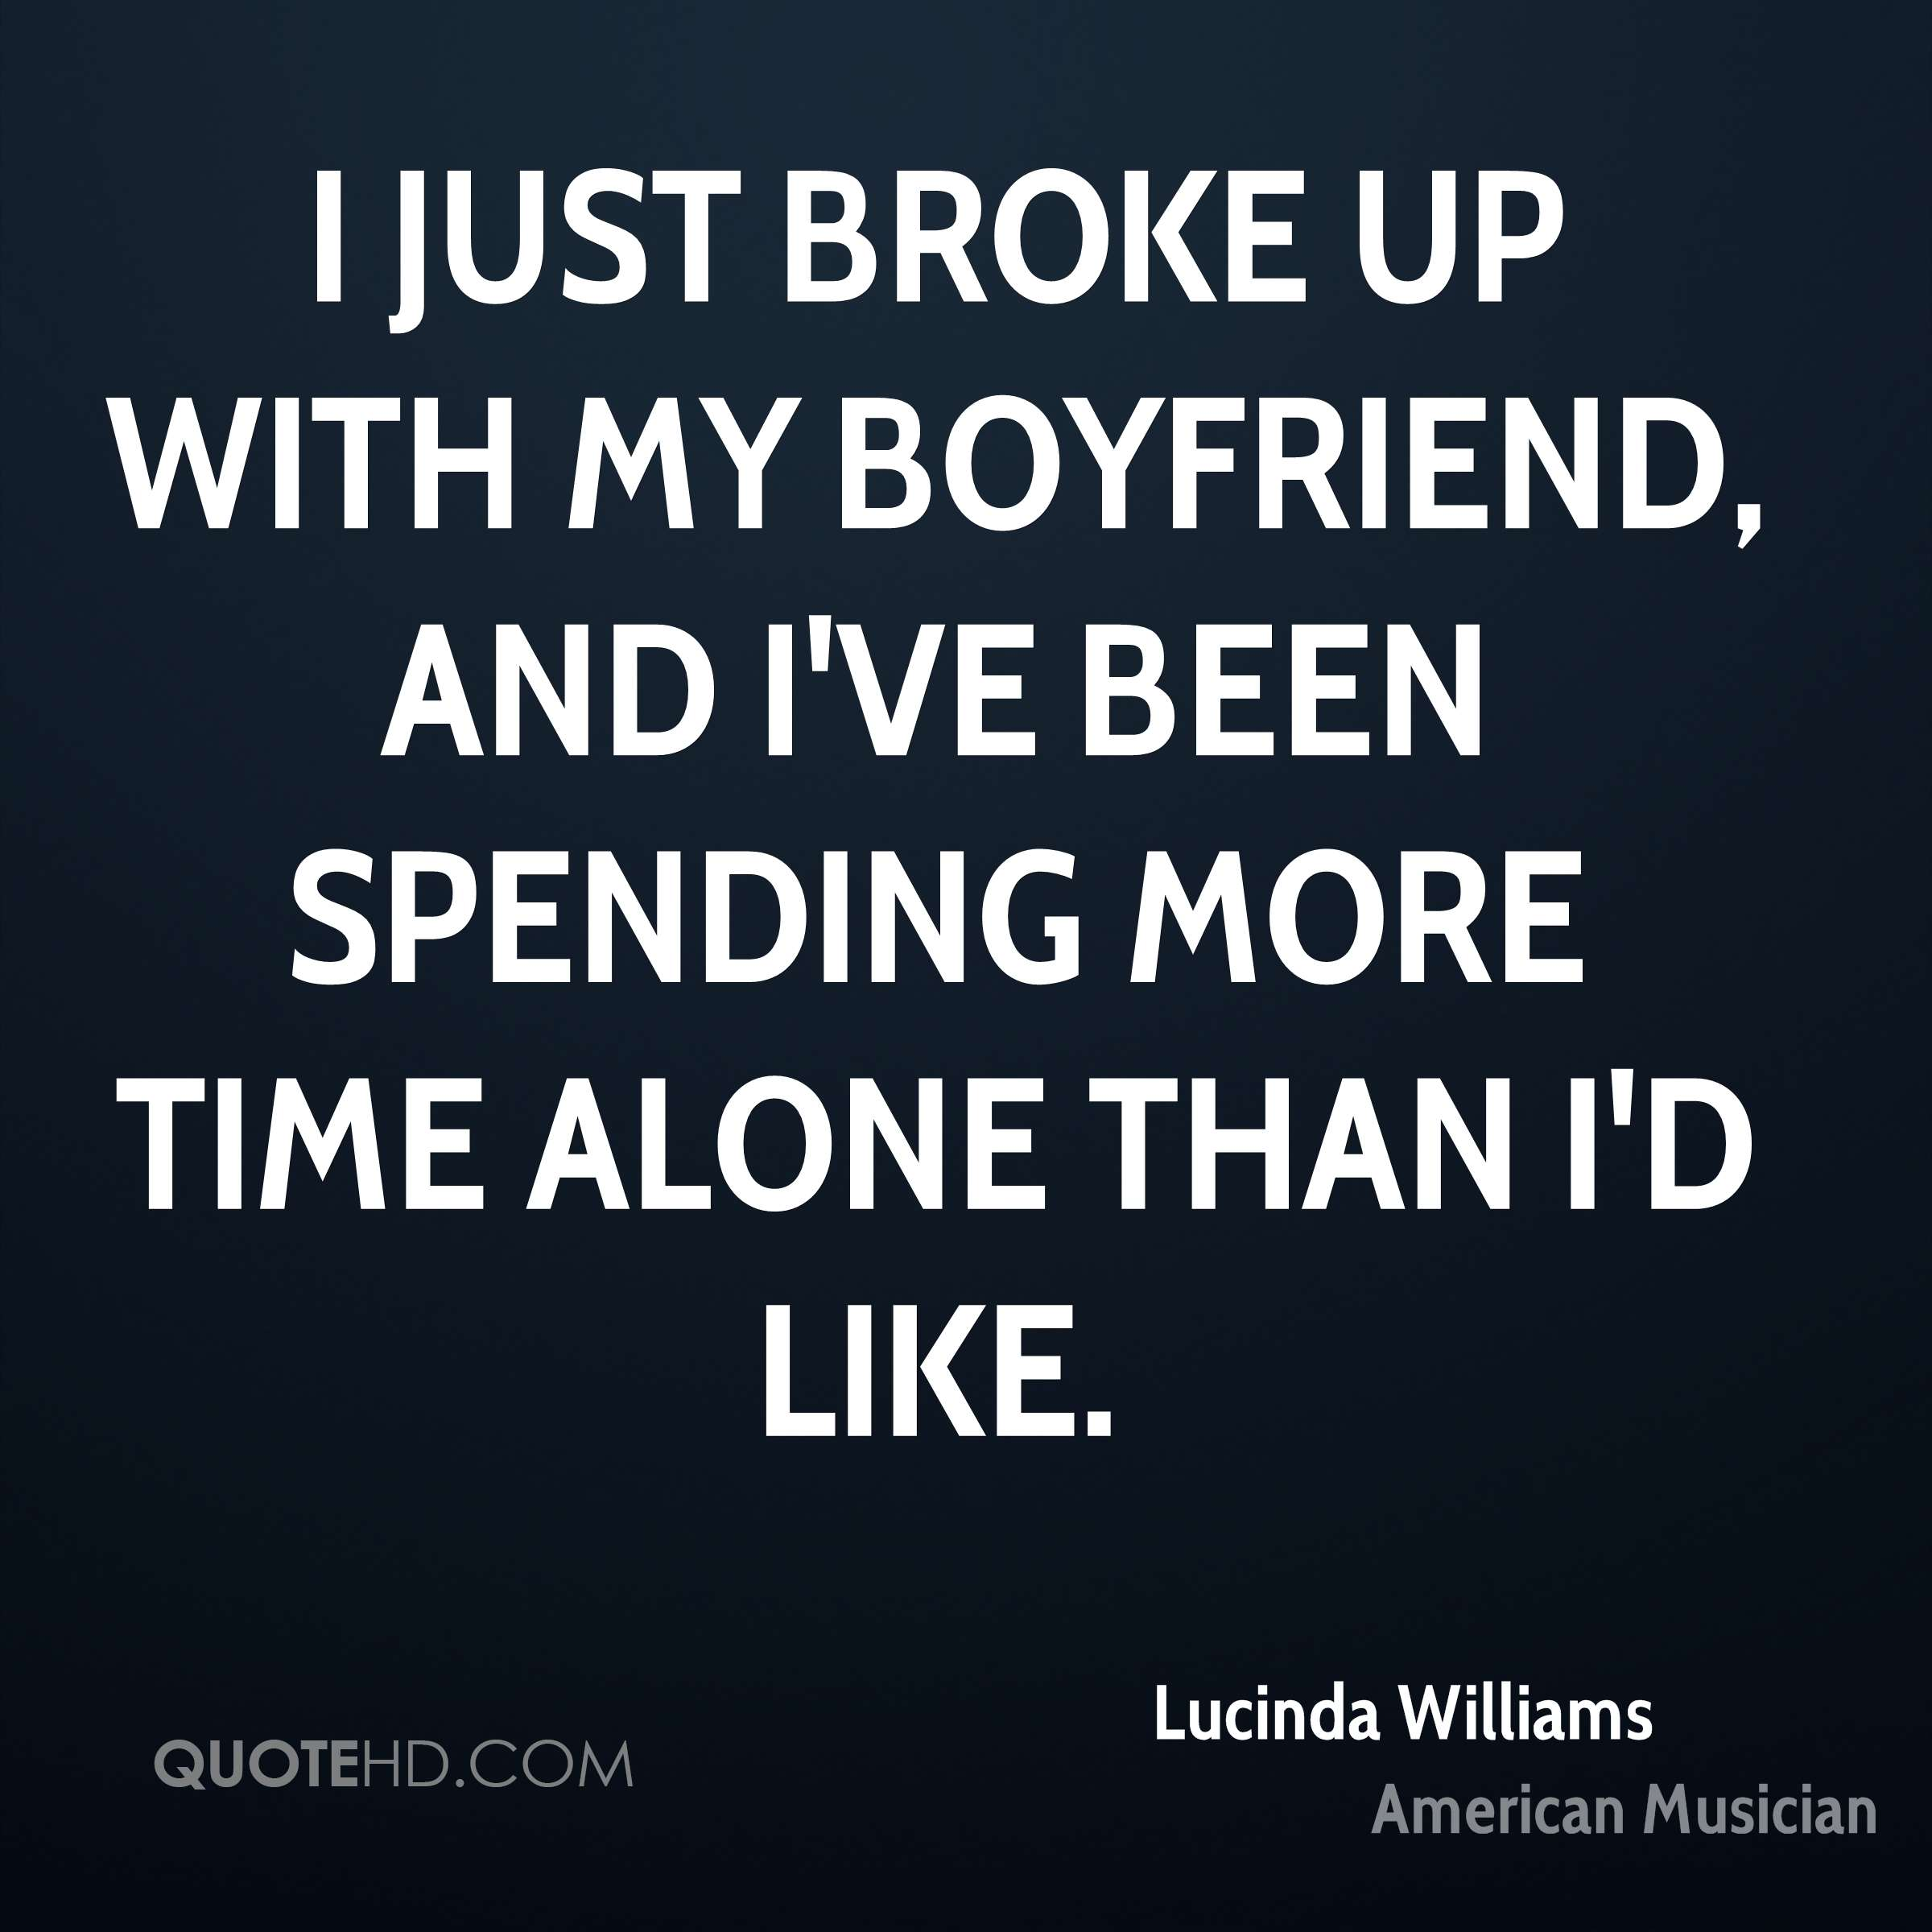 Lucinda Williams Quotes | QuoteHD